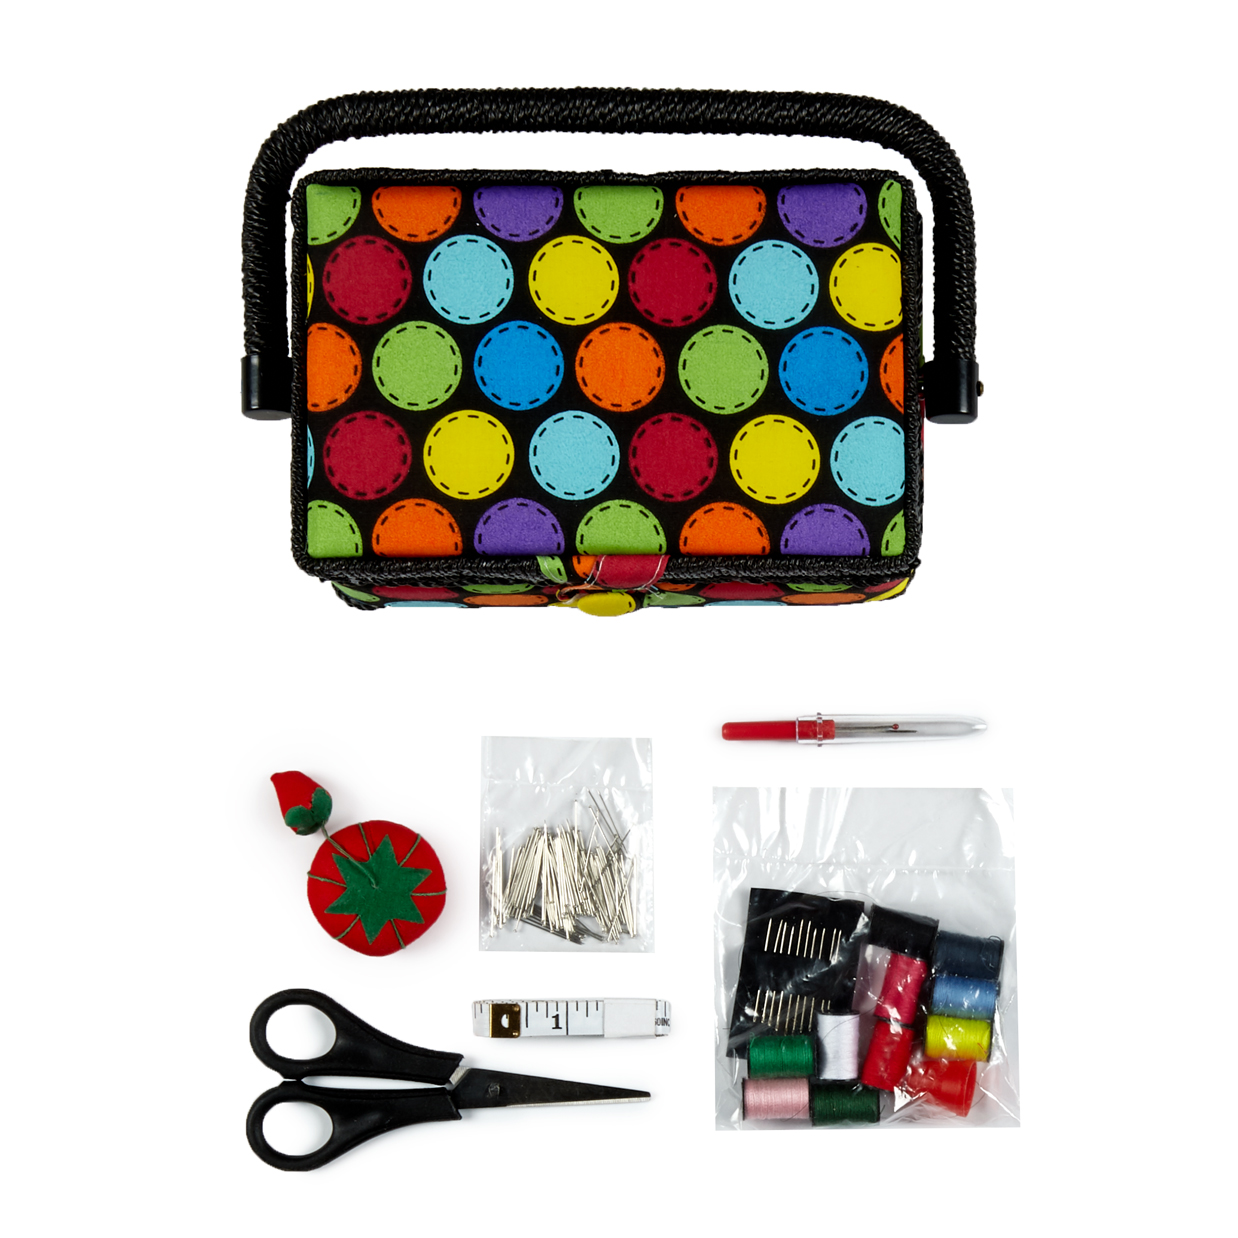 INOpets.com Anything for Pets Parents & Their Pets Singer Sew Essentials Sewing Basket Kit